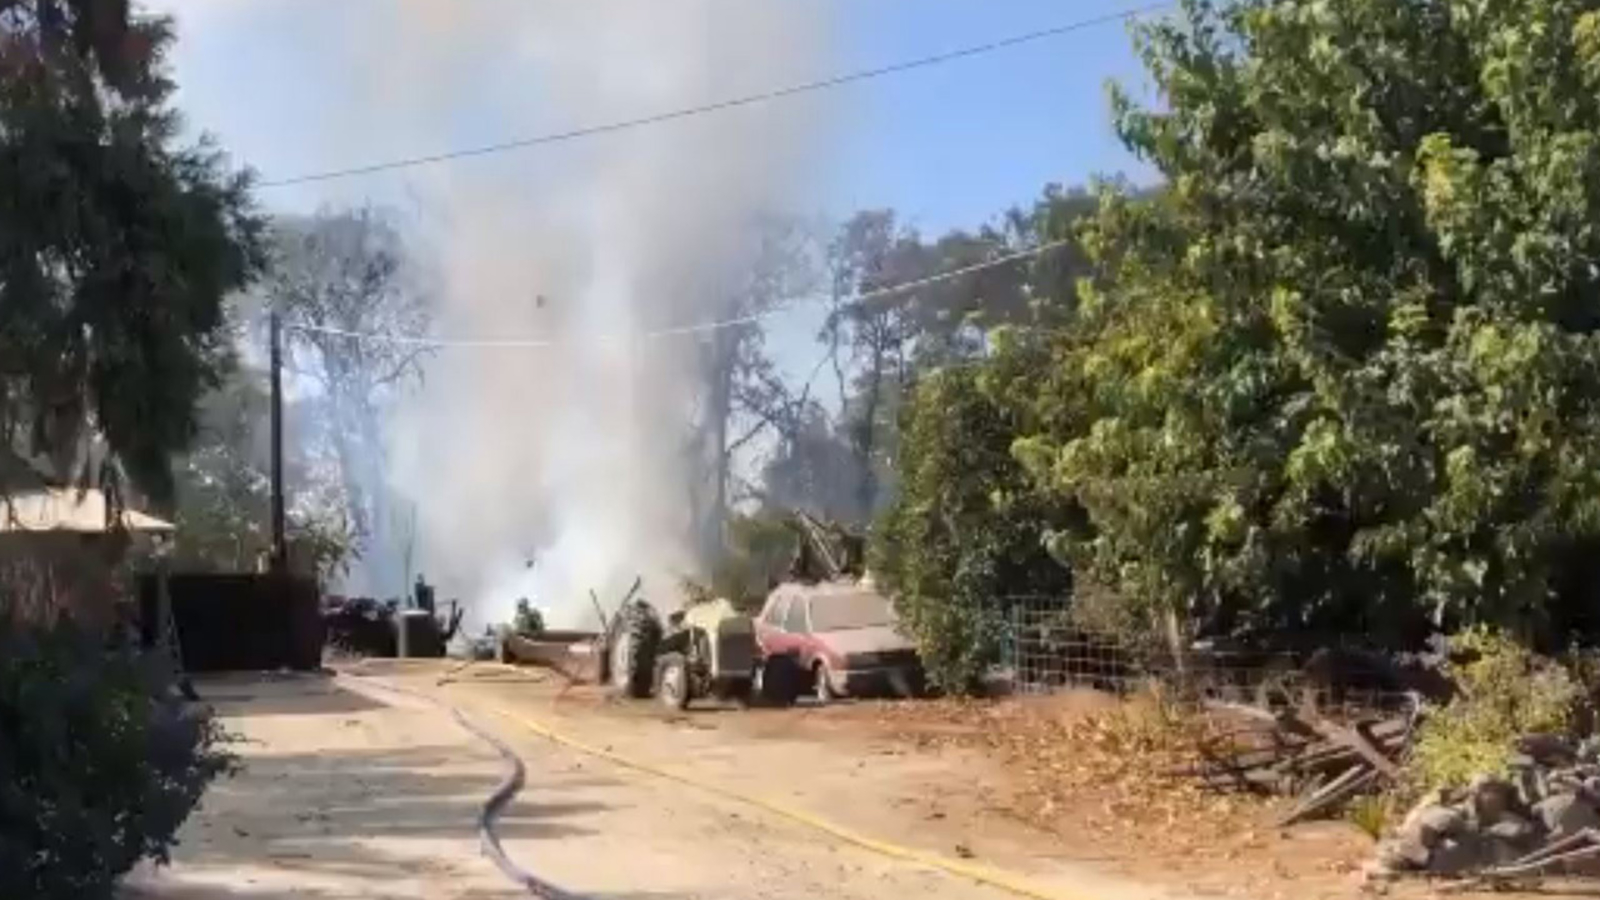 Firefighters battle grass fire threatening structure in Fresno County